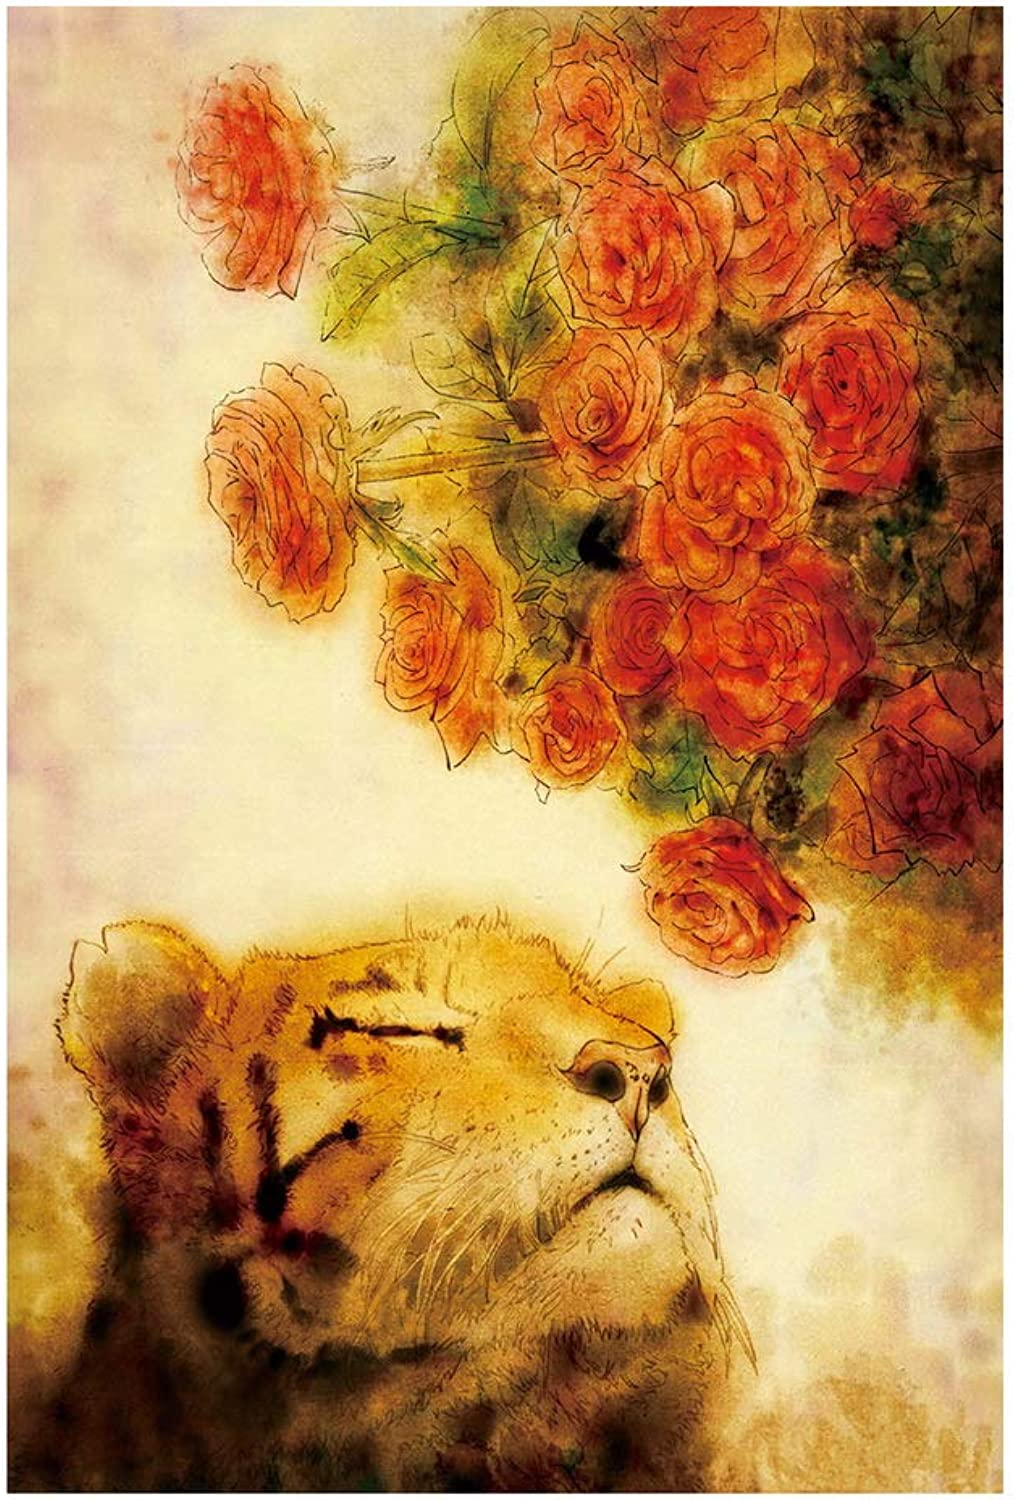 1000 Pieces of Linden Wood Cartoon Puzzle Toys, Tiger and Flowers